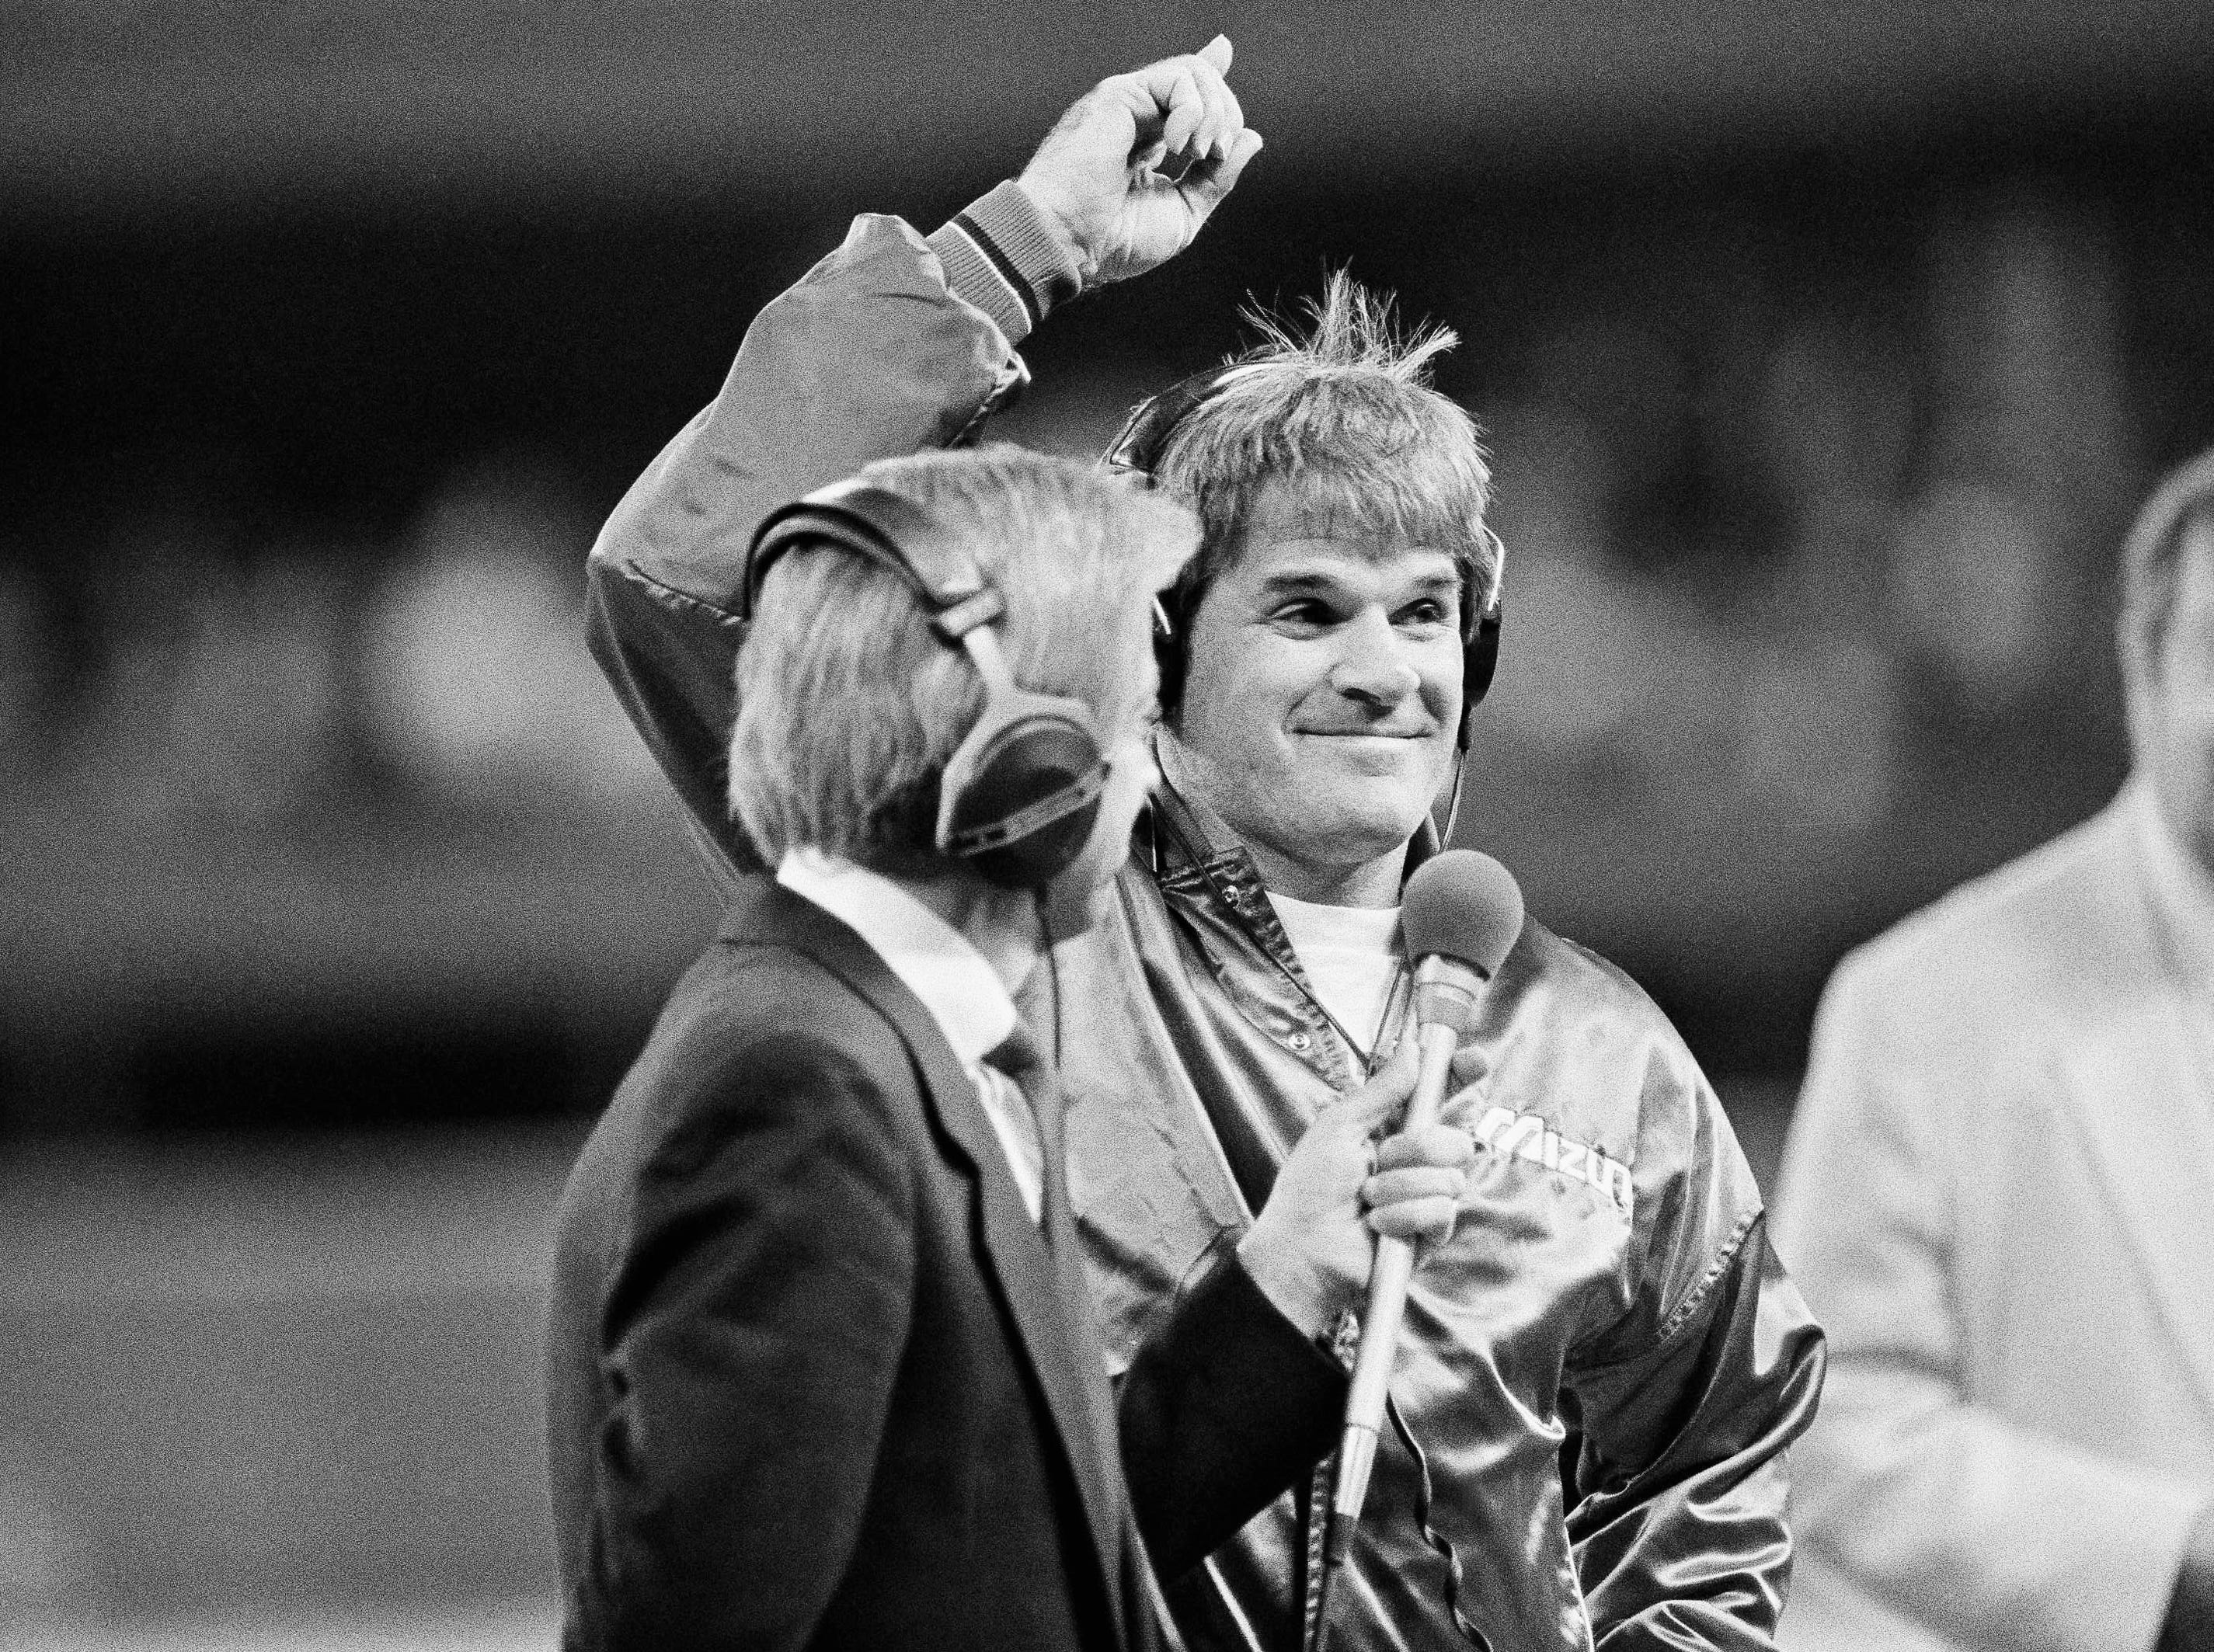 Cincinnati Reds player-manager Pete Rose signals to the crowd as President Reagan talks with him via telephone hookup, Wednesday, Sept. 11, 1985 in Cincinnati. Rose singled in the first inning to break Ty Cobb's all-time hit record. Reds radio announcer Marty Brennaman handles the mike.